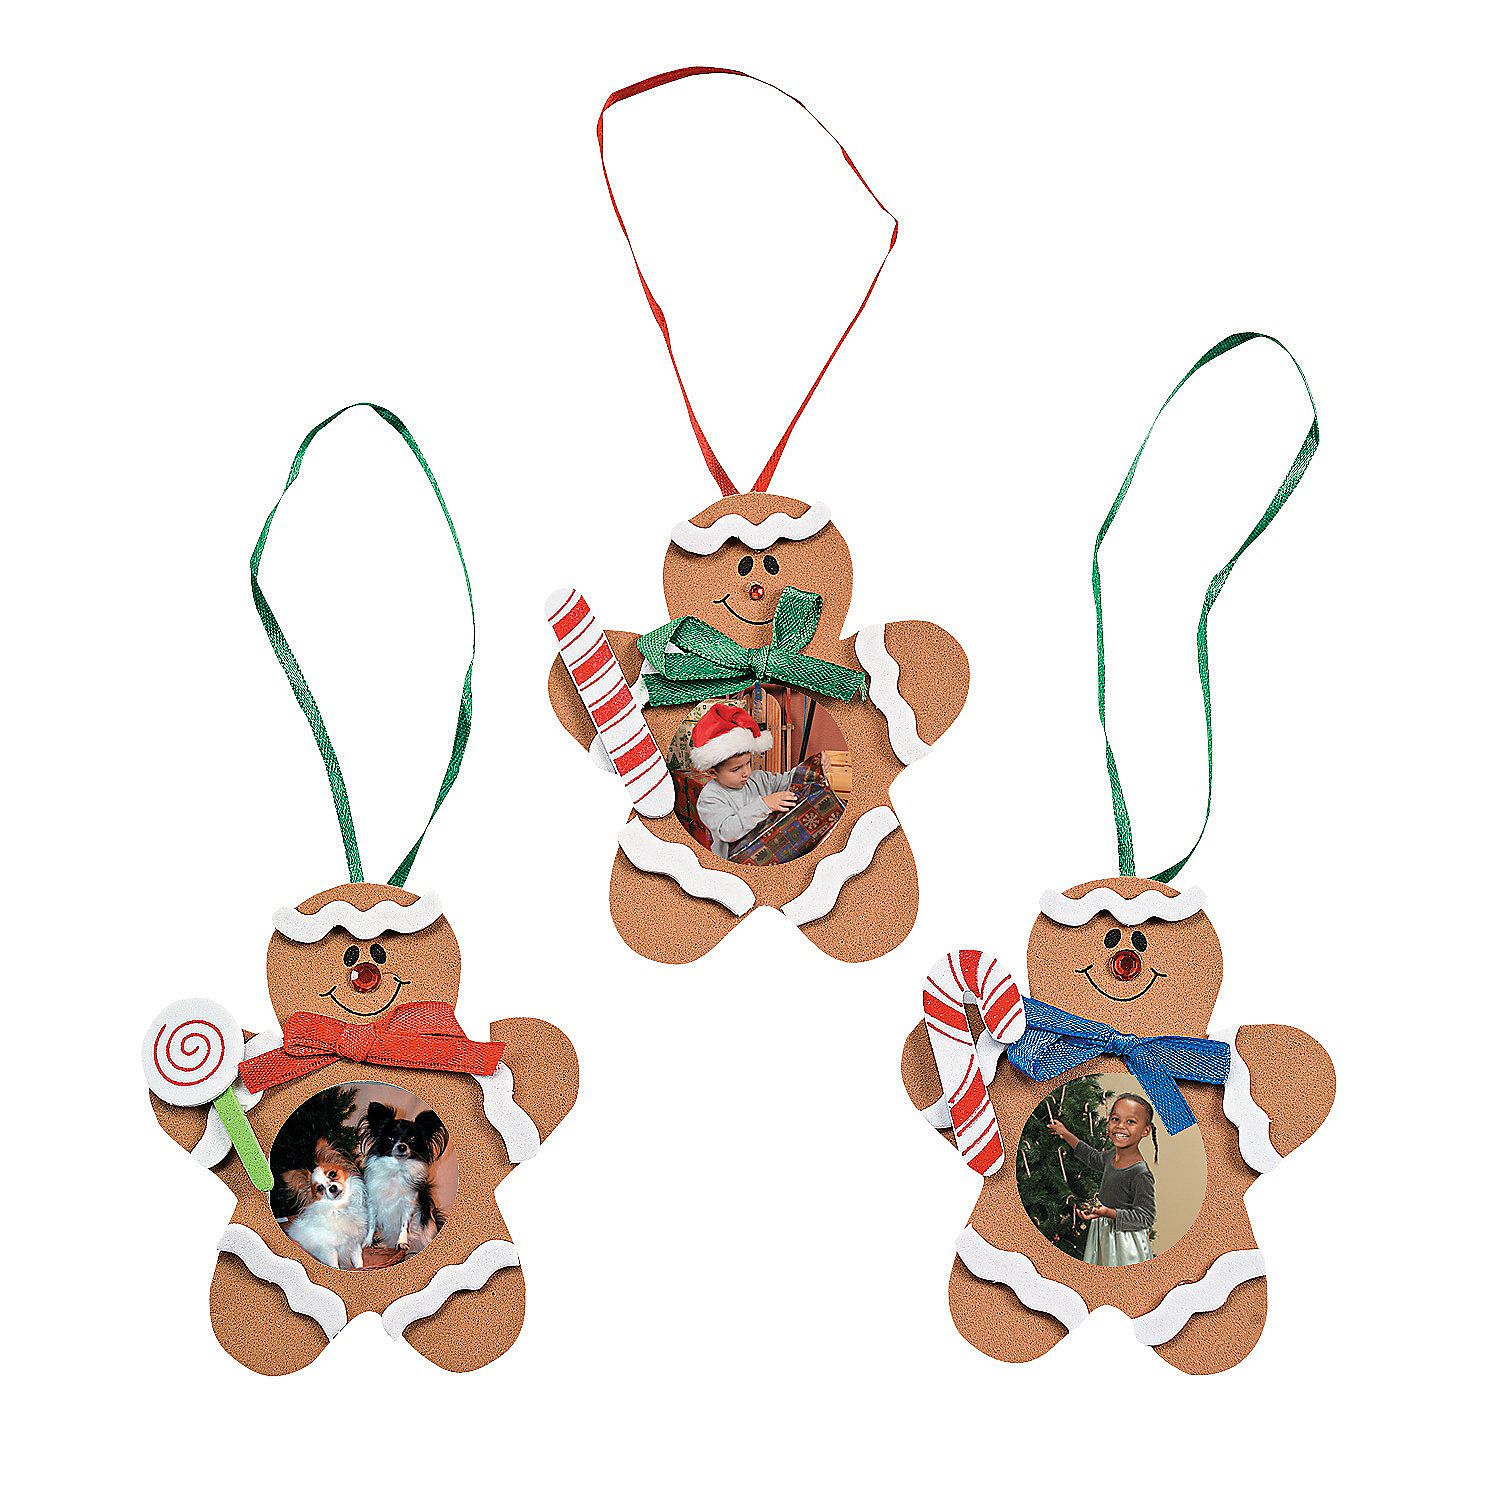 Gingerbread Man Photo Frame Ornament Craft Kit  Orientaltradingcom